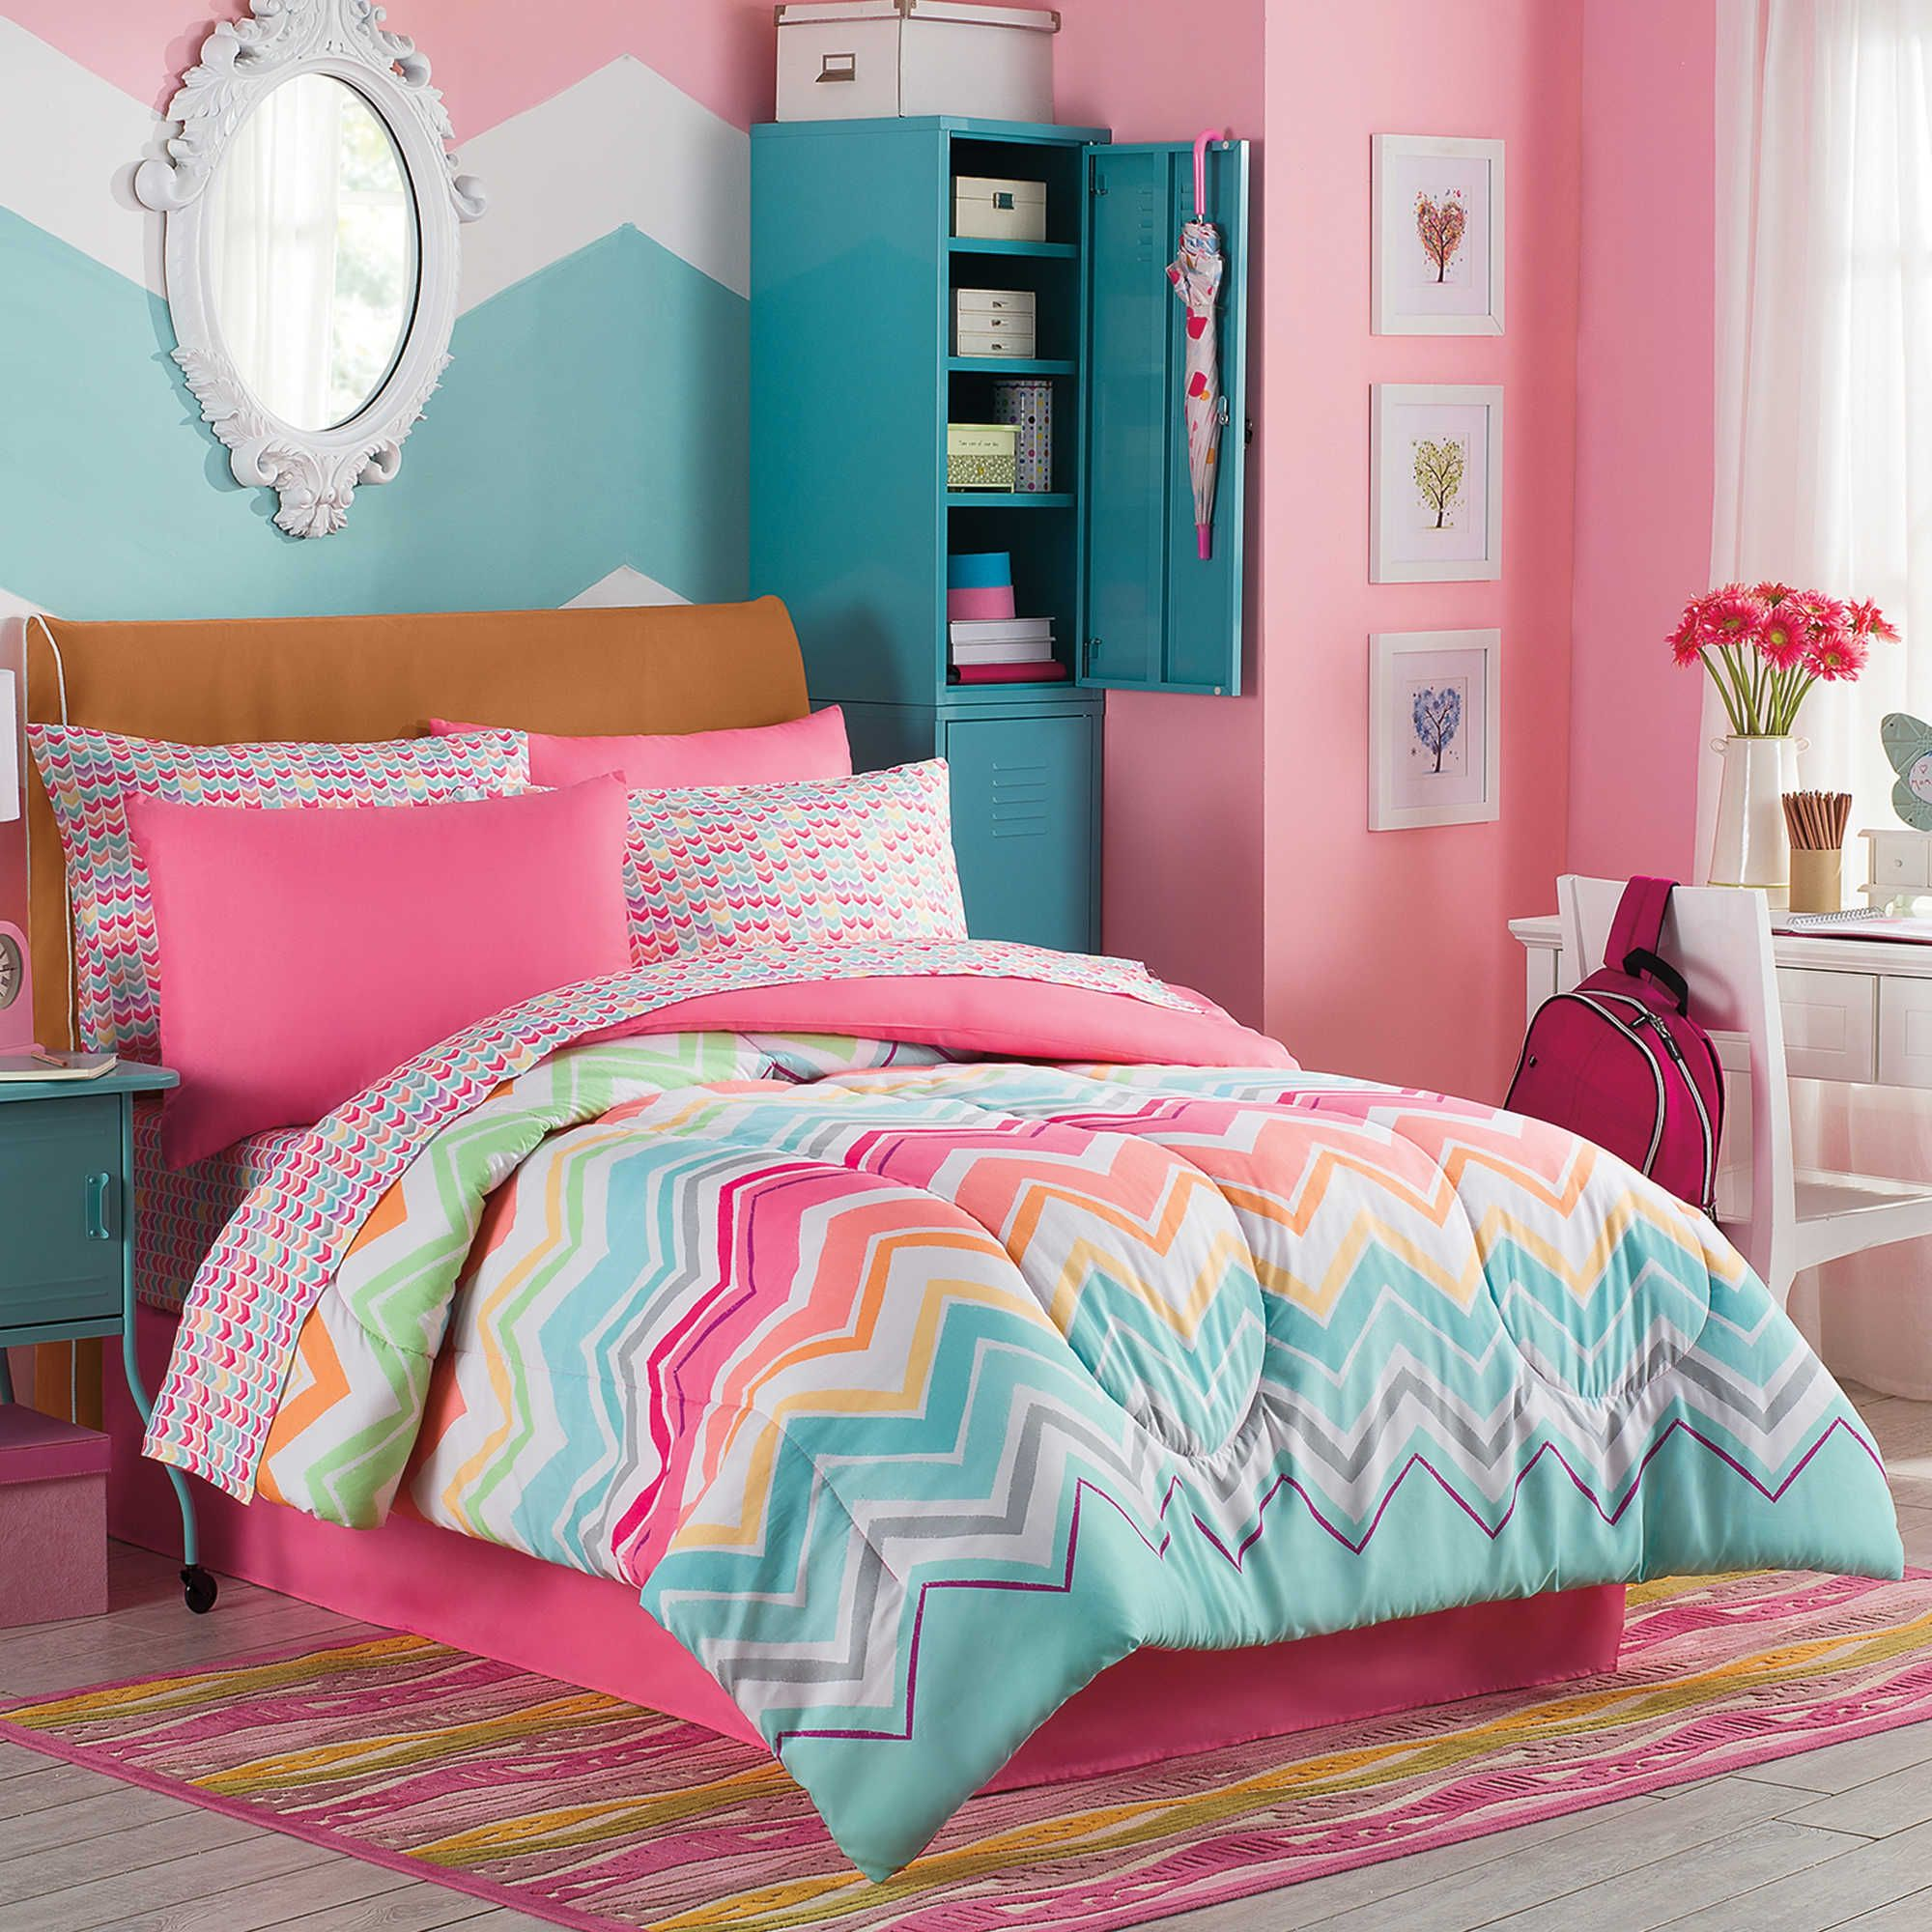 Blue bedroom sets for girls - Marrielle Complete Comforter Set